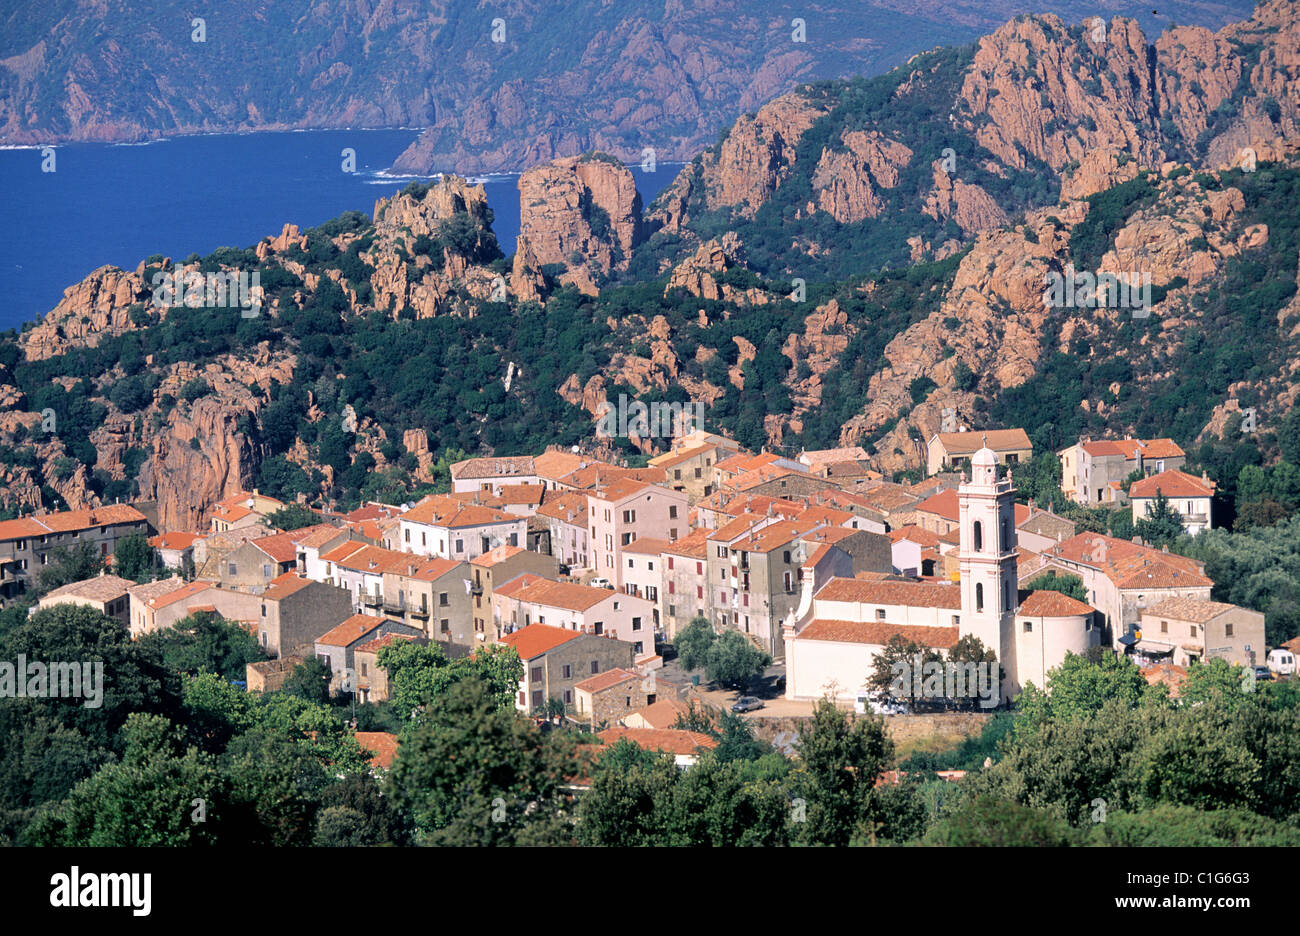 France Corse Du Sud Piana Village Inlets Labelled Les - Cheminees Du Sud Drancy